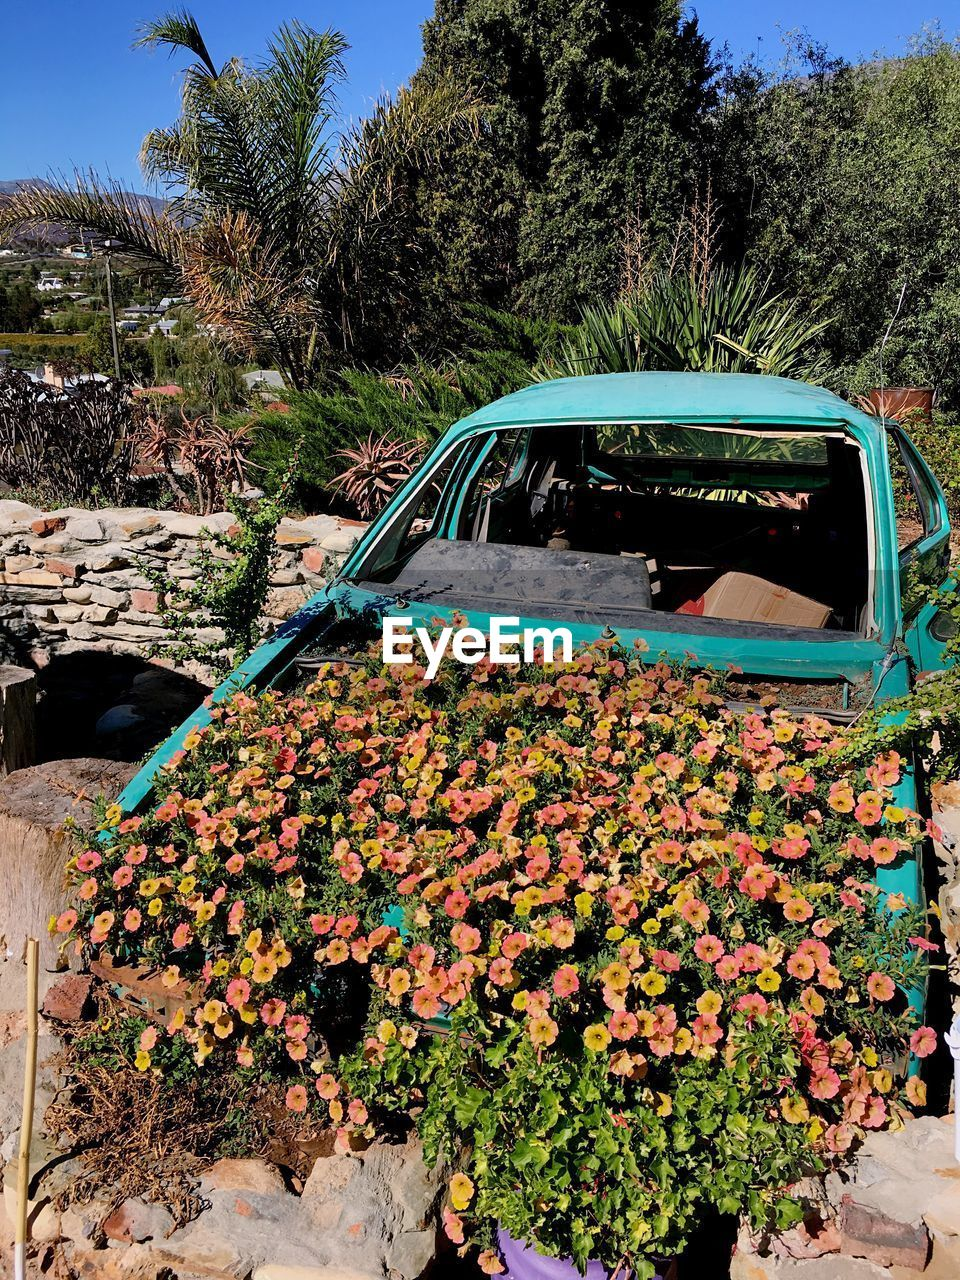 plant, mode of transportation, transportation, nature, car, day, tree, motor vehicle, flower, flowering plant, growth, land vehicle, no people, outdoors, beauty in nature, sunlight, architecture, green color, sky, leaf